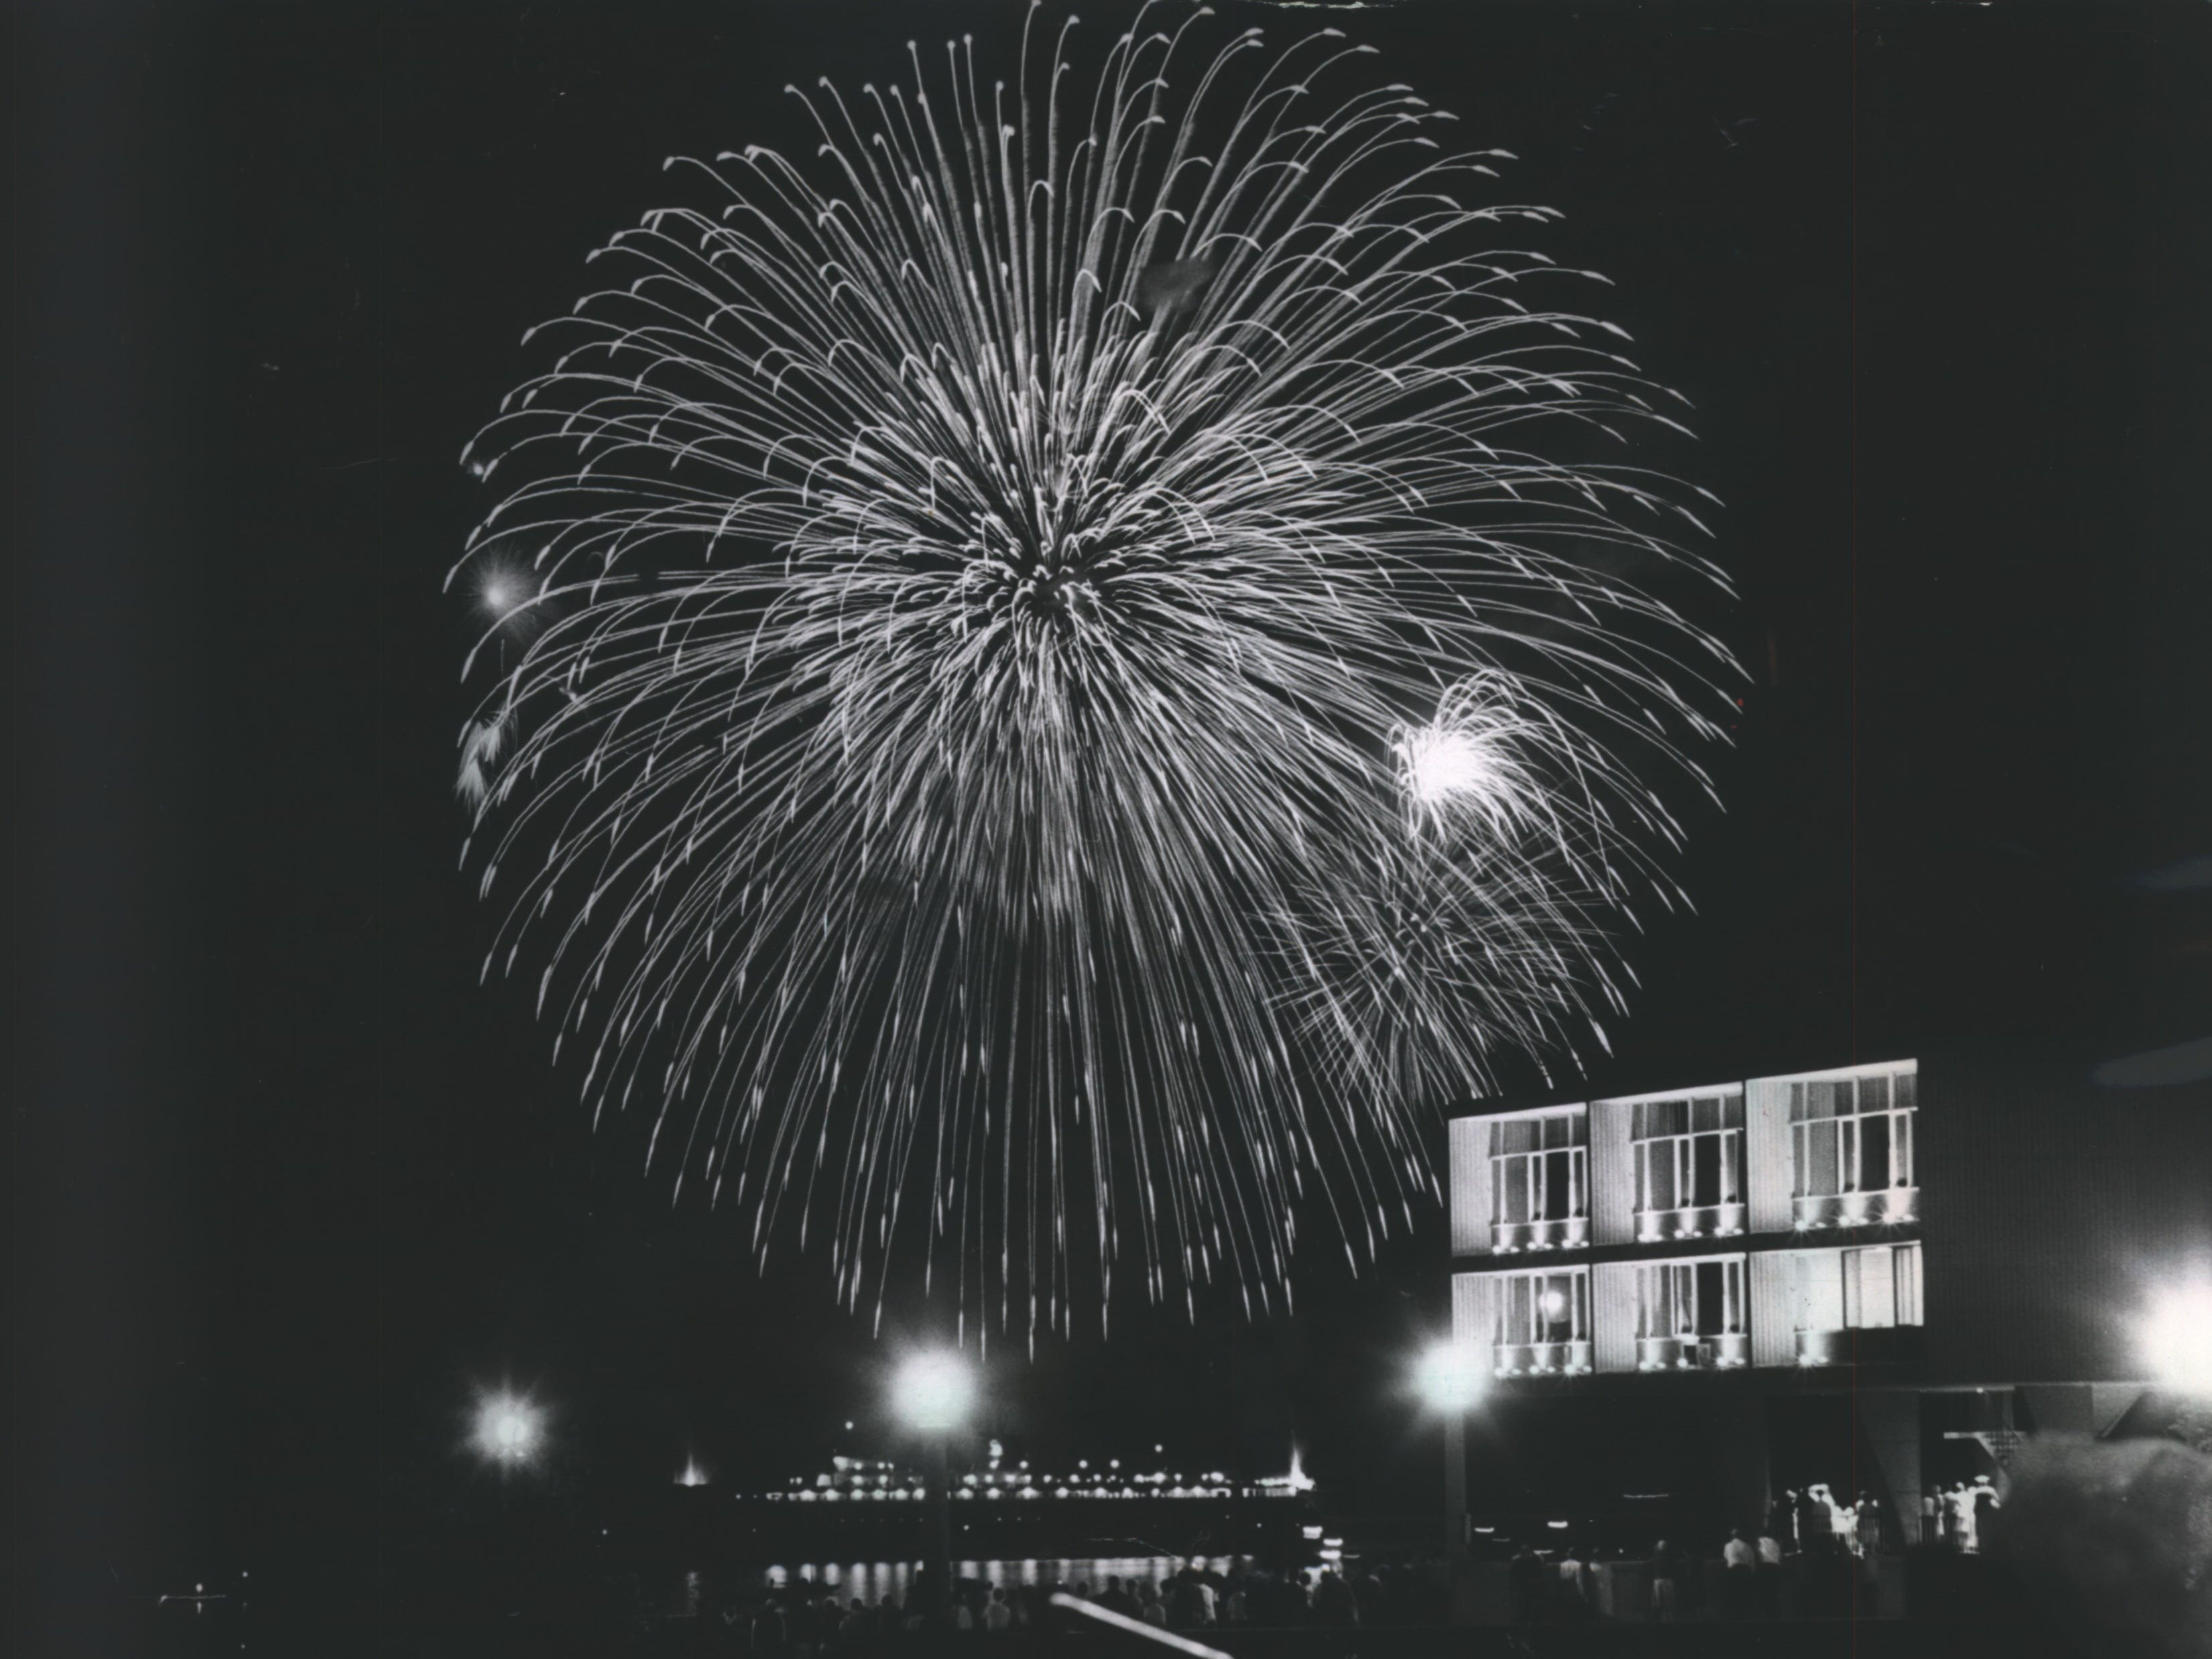 """The big """"Day in Old Milwaukee"""" ended with fireworks at the lakefront on July 4, 1964. It was the second year Jos. Schlitz Brewing Co. sponsored the Great Circus Parade and a big lakefront fireworks show on July 4. The fireworks, shown bursting over the War Memorial Center, were fired off the deck of the carferry SS Badger, seen at the bottom of the photo. This picture was published in the July 6, 1964, Milwaukee Sentinel."""